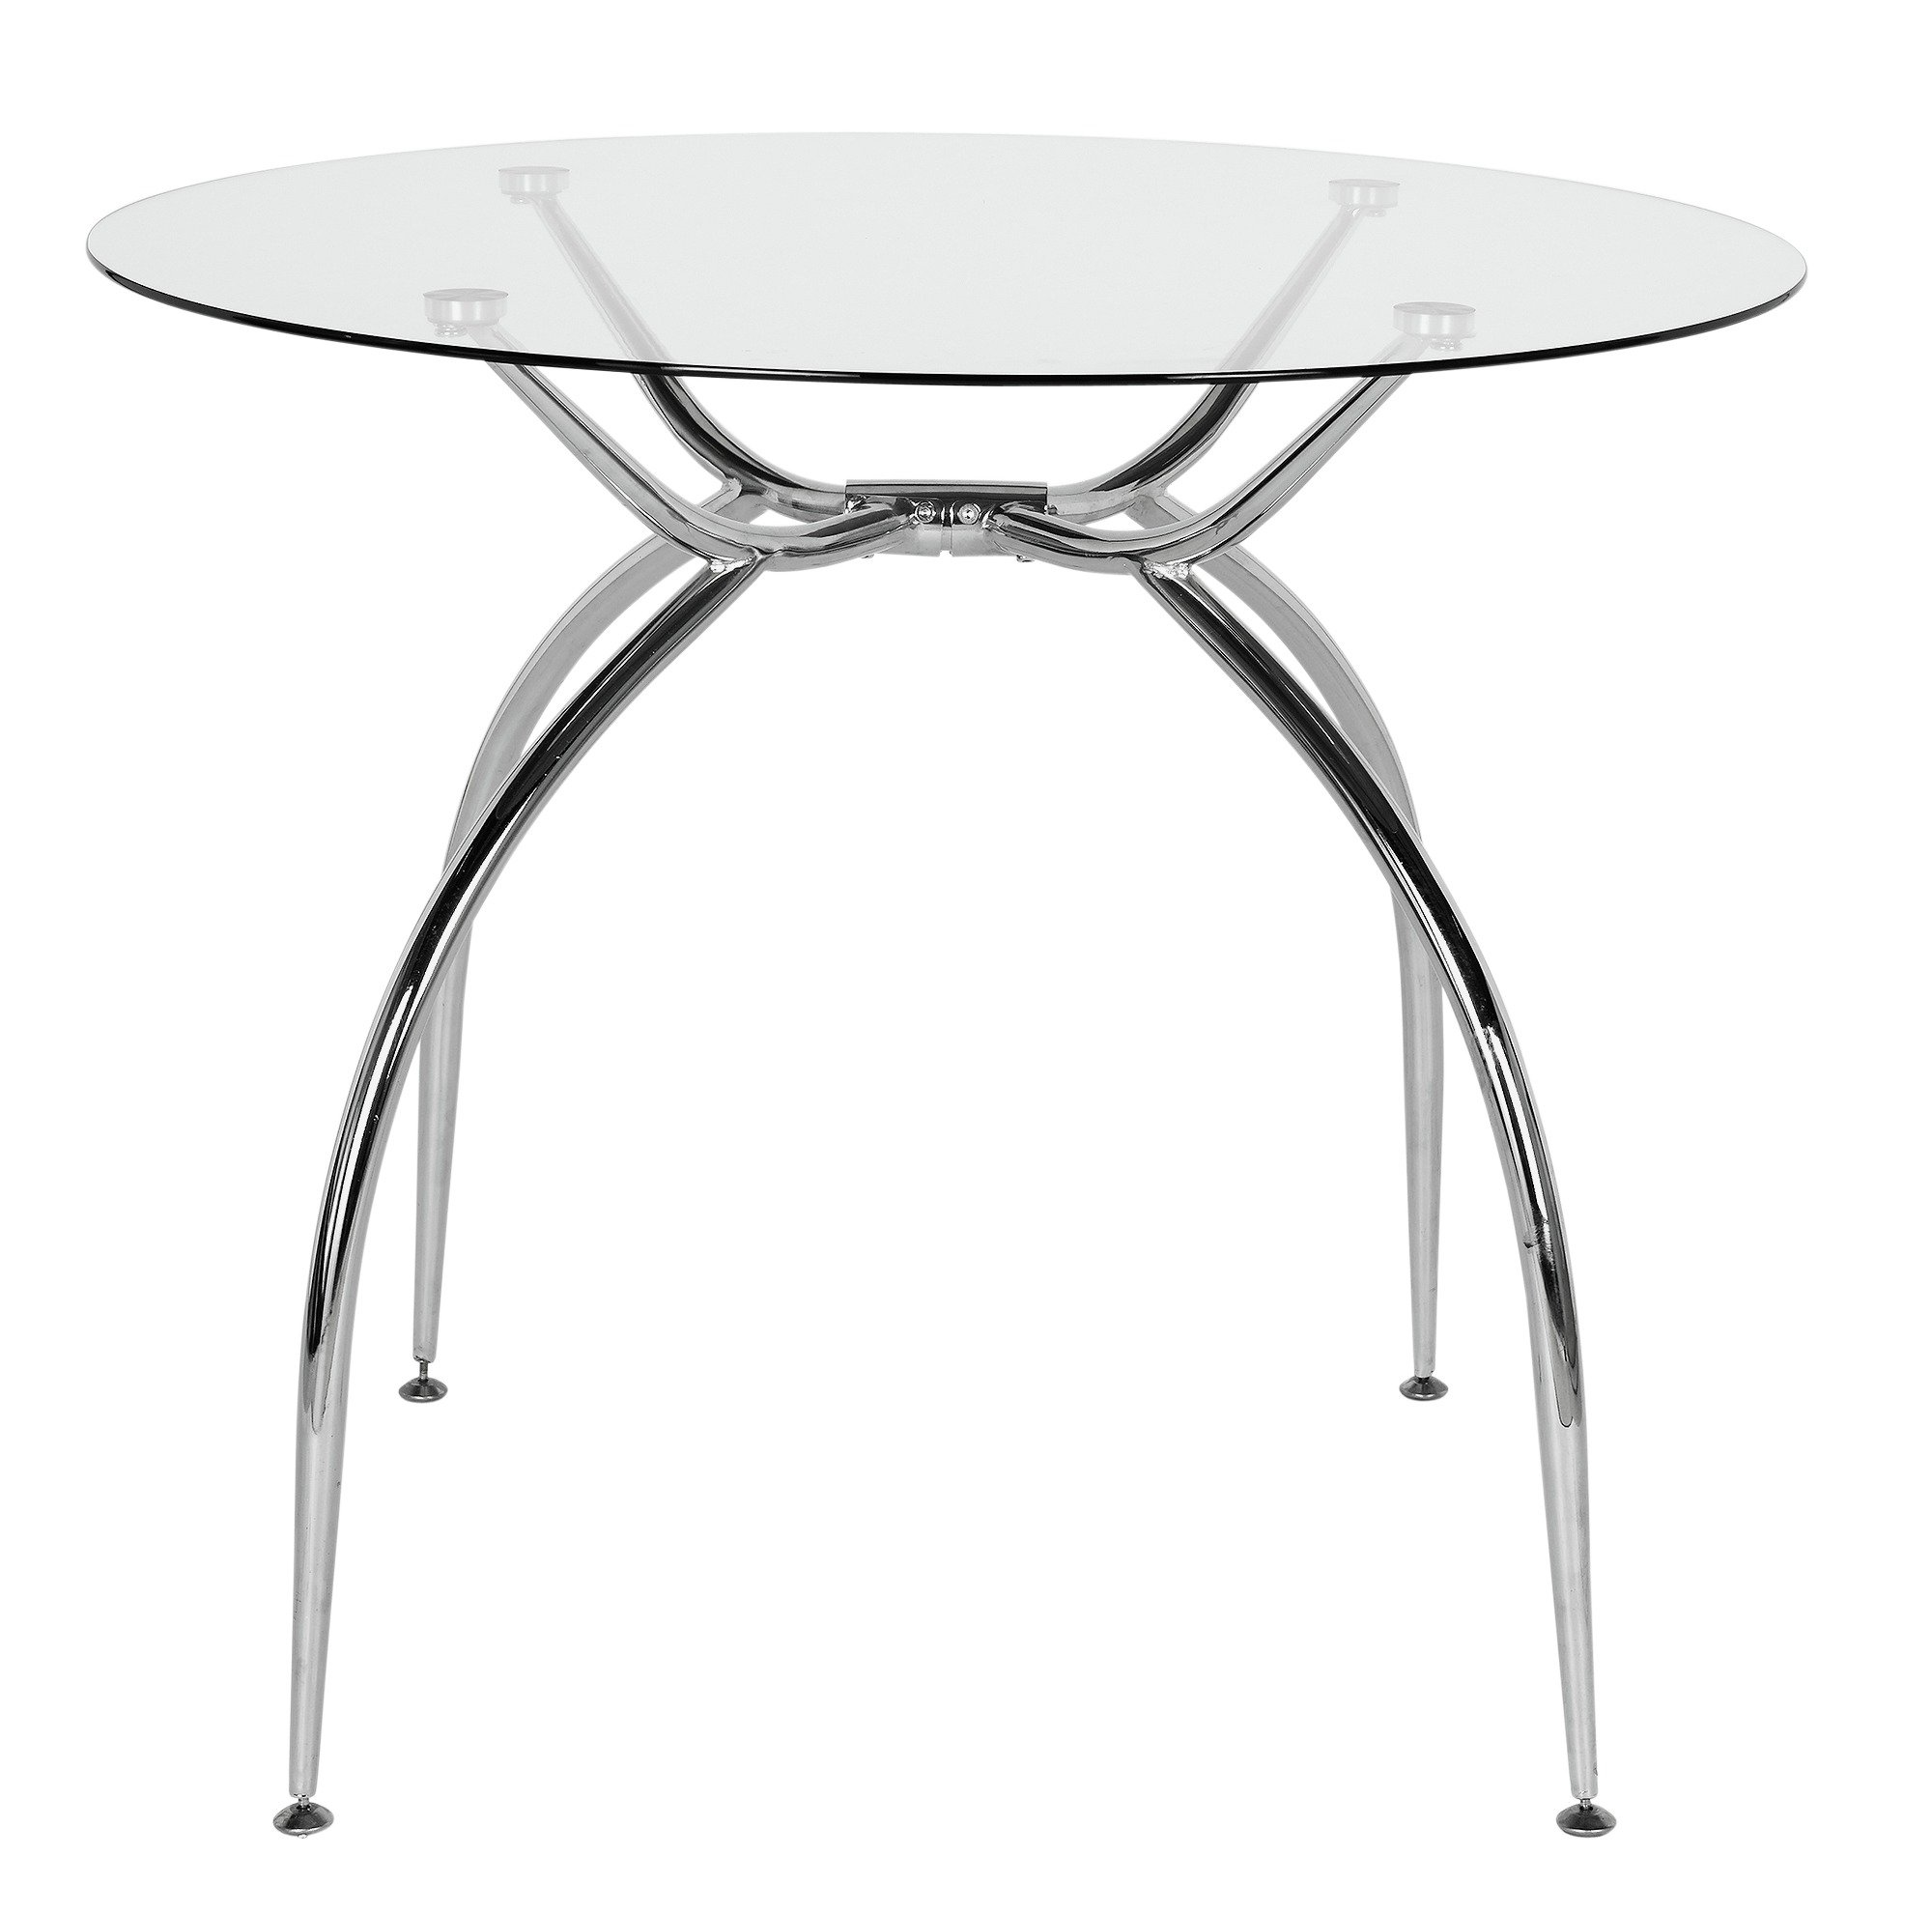 Argos Home Lusi Glass Dining Table and 4 Chairs Reviews